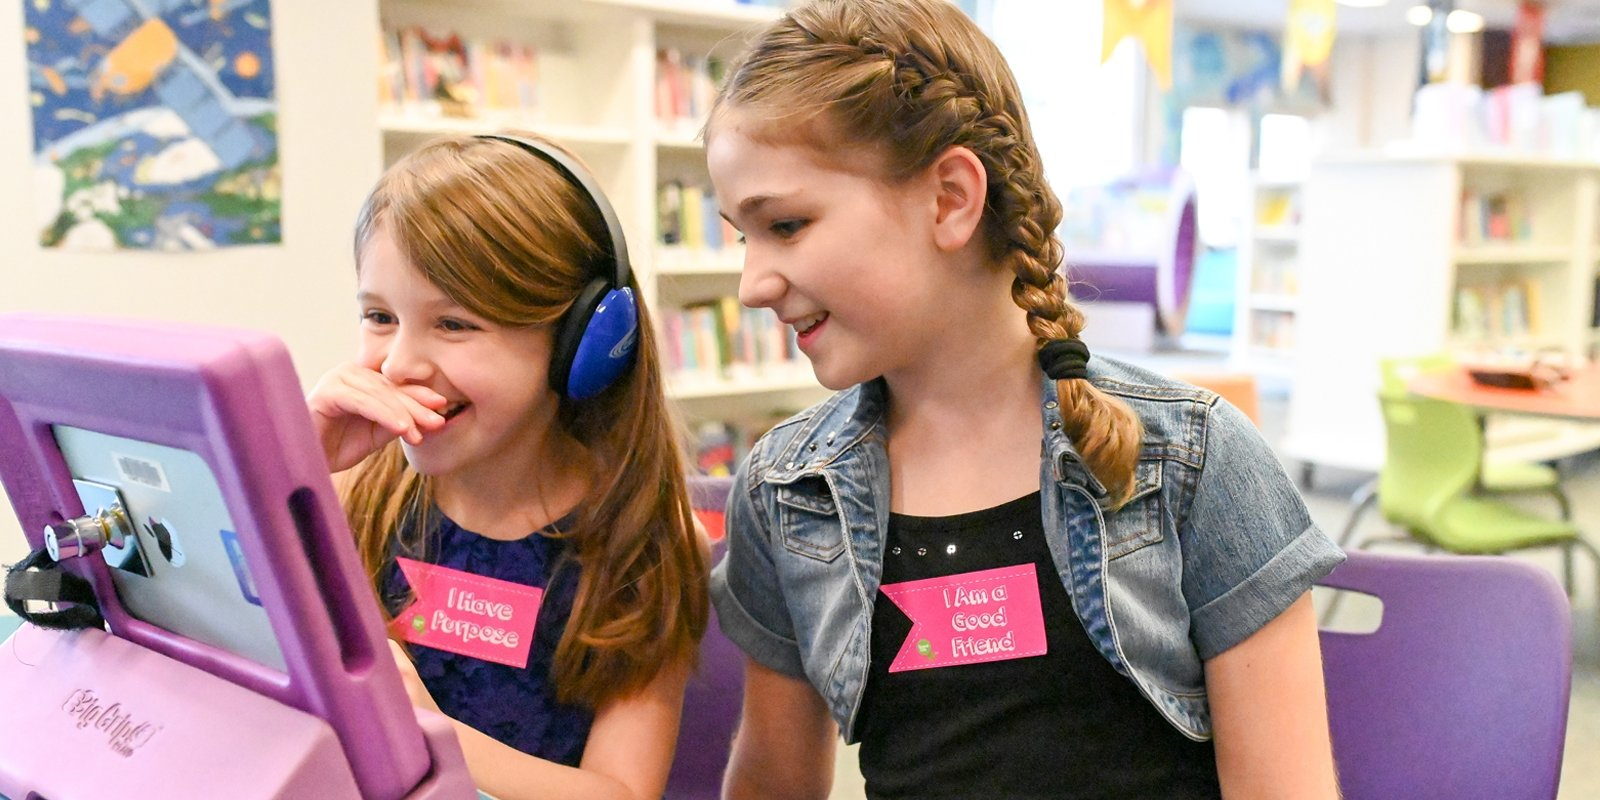 2 girls at computer wearing Speak Life Badges